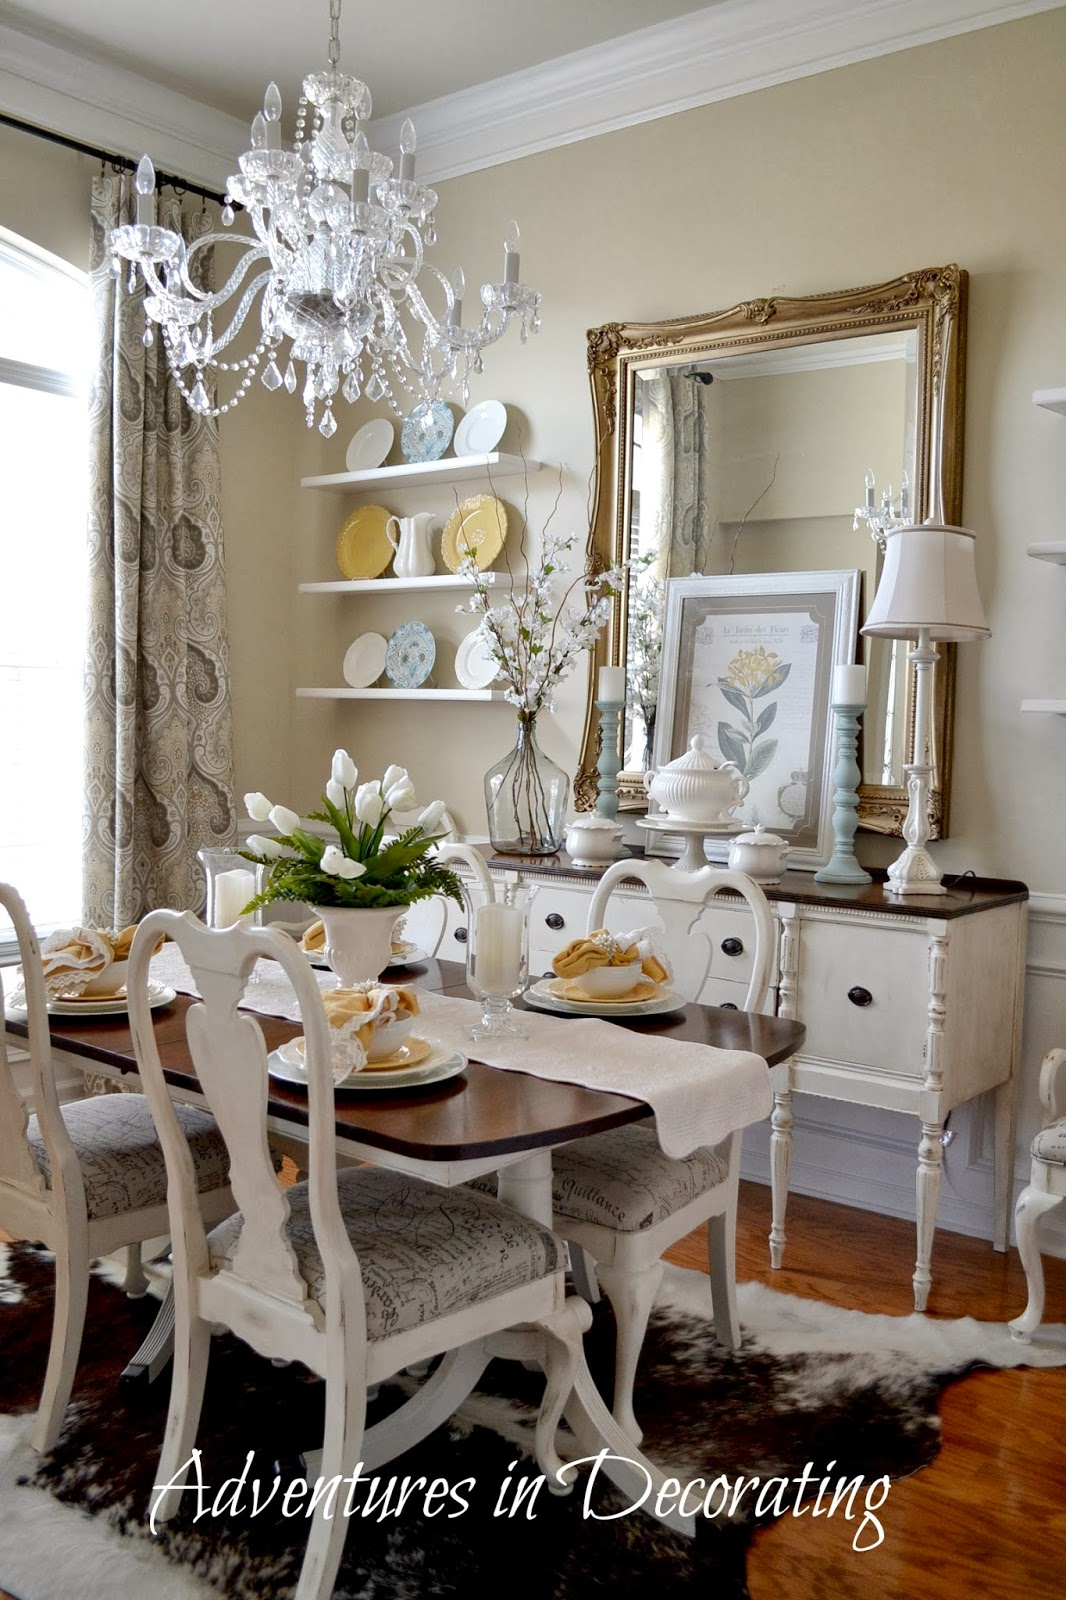 Designs Of Rooms: Adventures In Decorating: Our Refreshed Dining Room